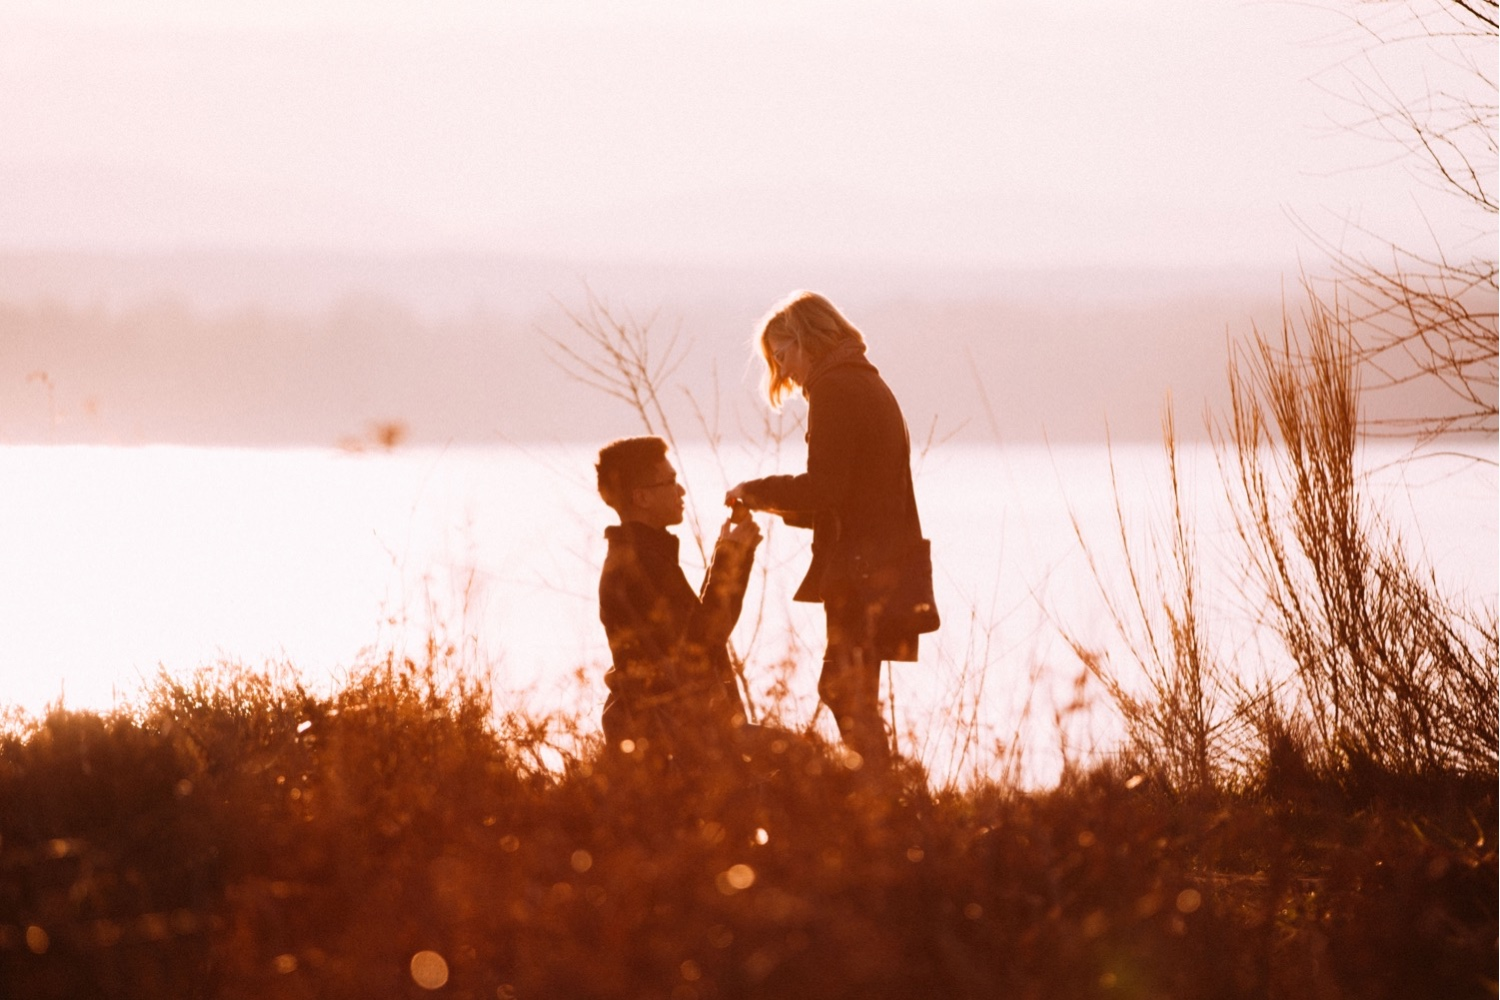 03_MC-17_proposal,_adventure,_photographer_seattle_zoeburchardstudio_burchard_zoe_seattlebride_adventurous,_discoverypark_sunsetproposal_sunset.jpg